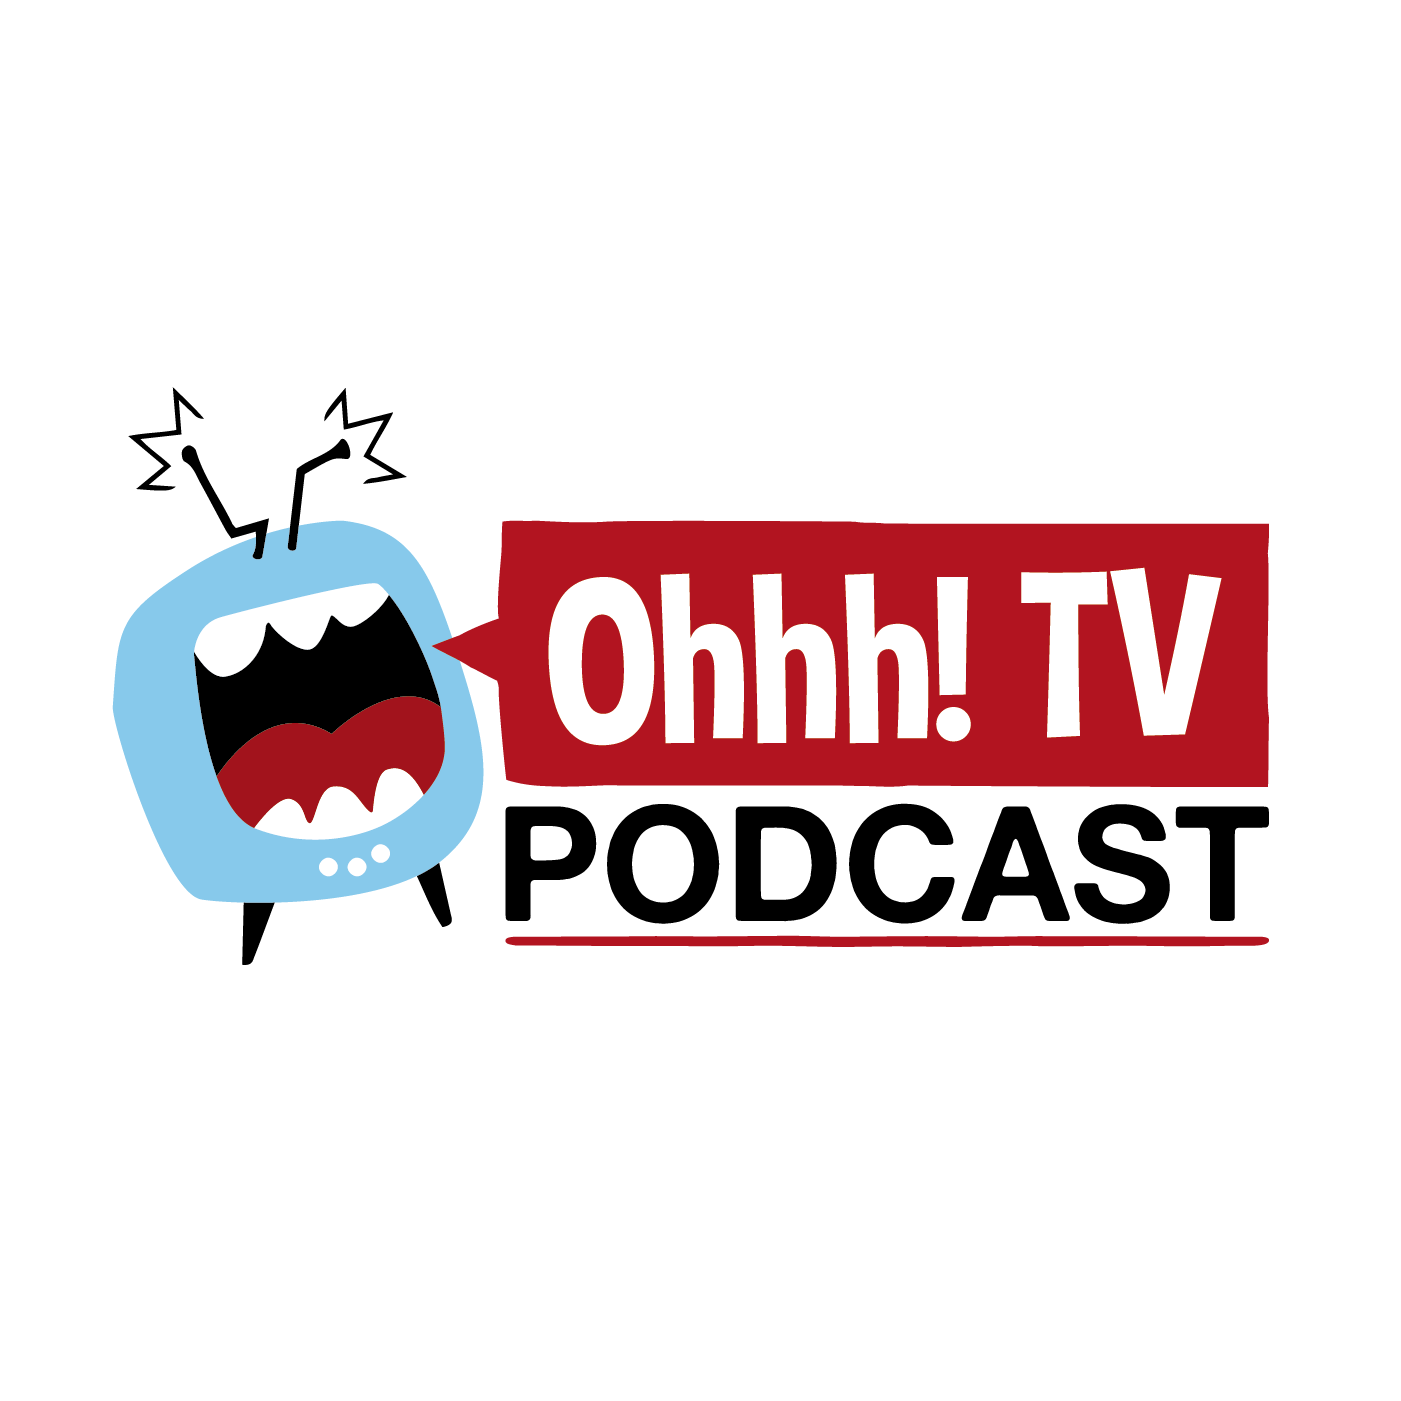 Logo de Ohhh! TV Podcast